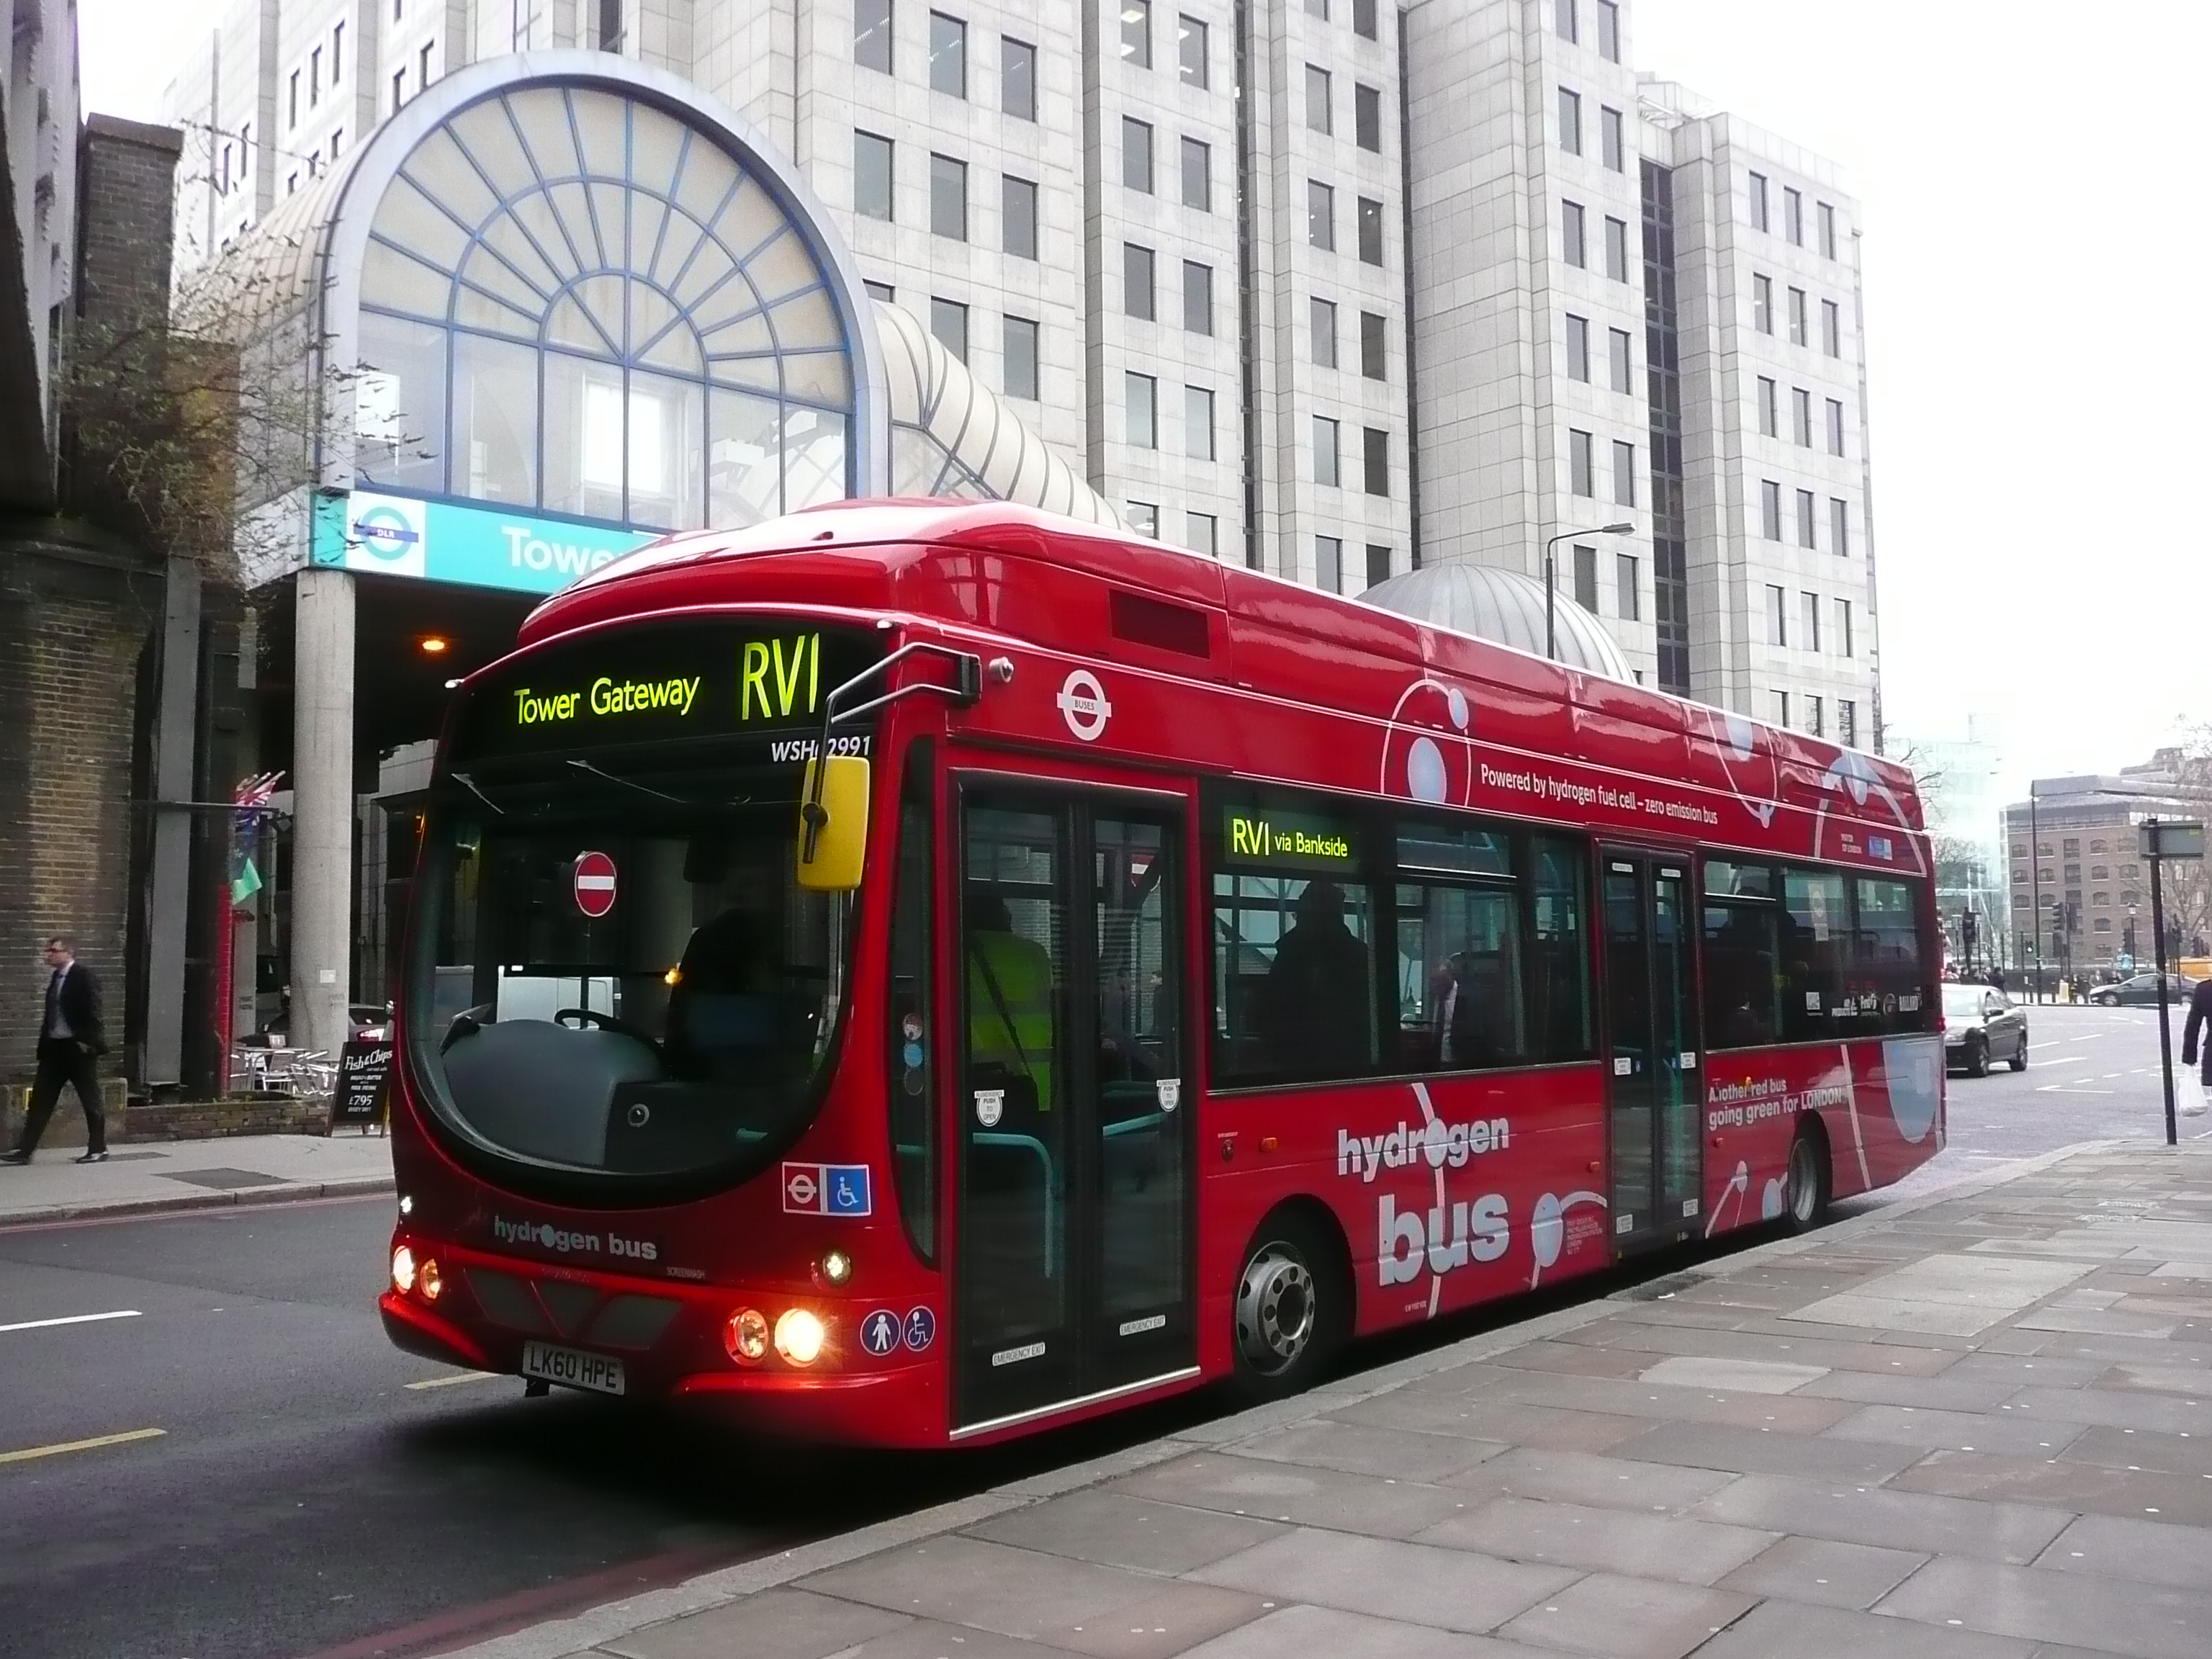 HyFLEETCUTE-HydrogenBus-London2.JPG